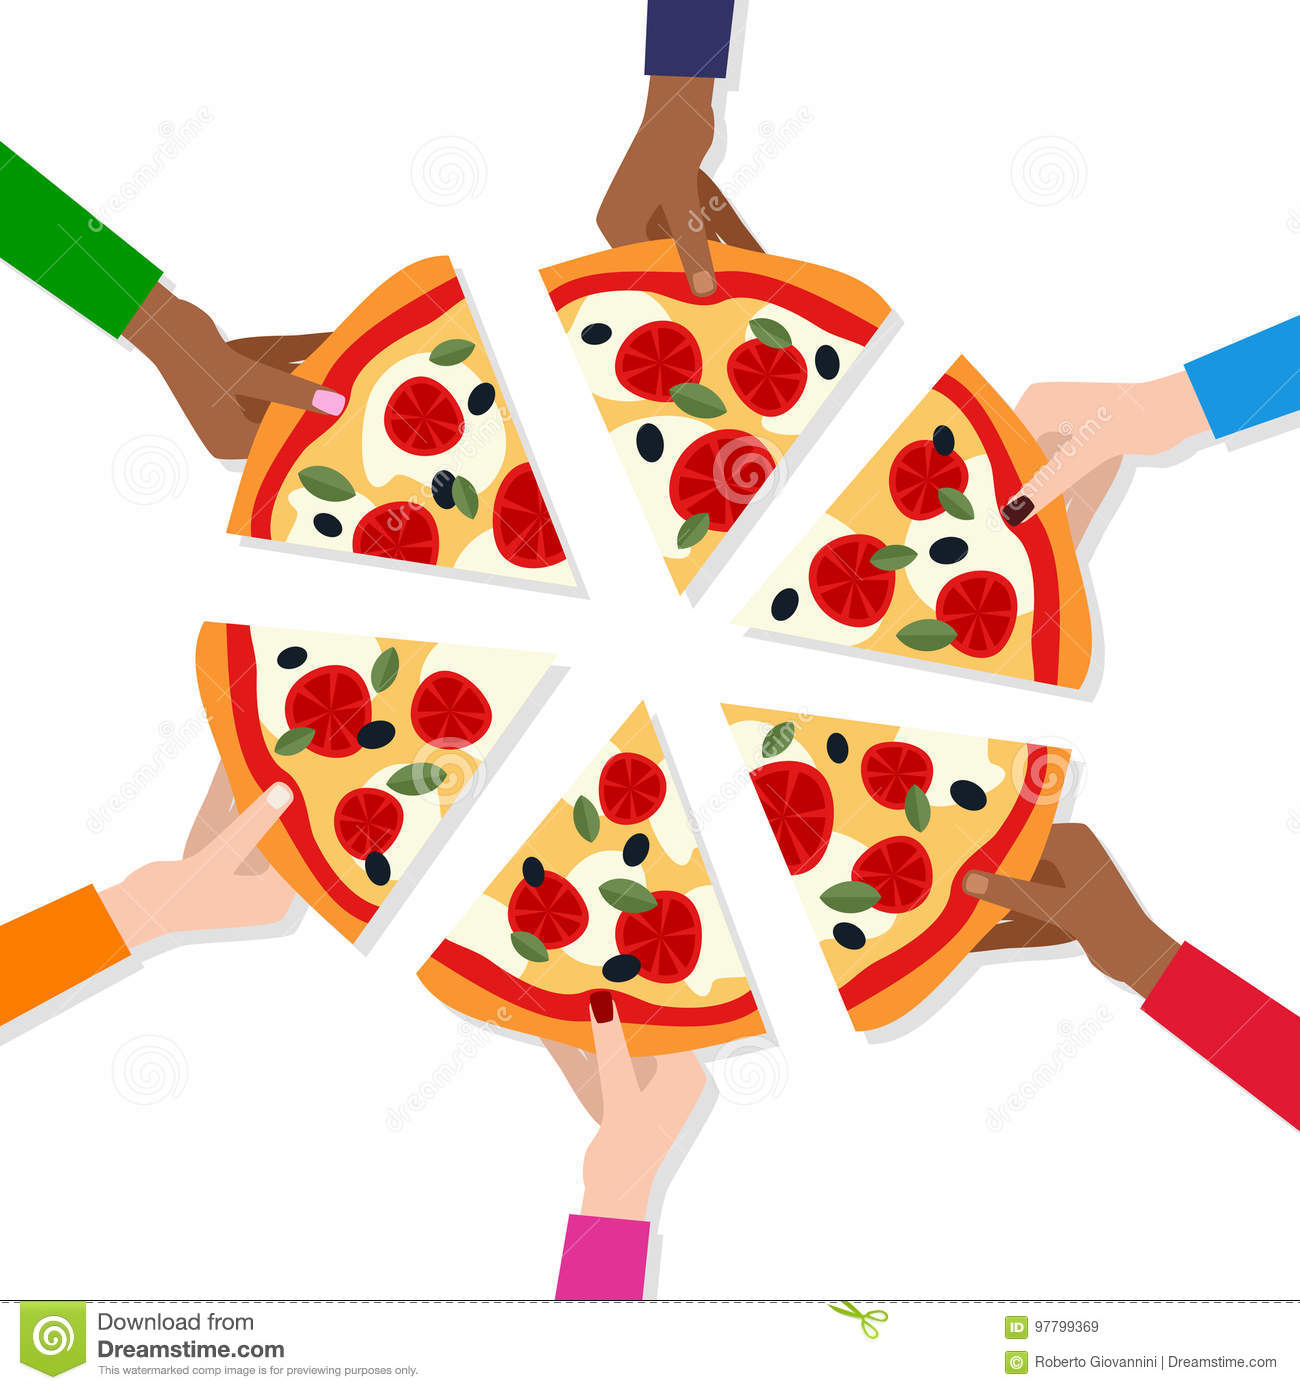 People`s Hands Taking Slices of Pizza